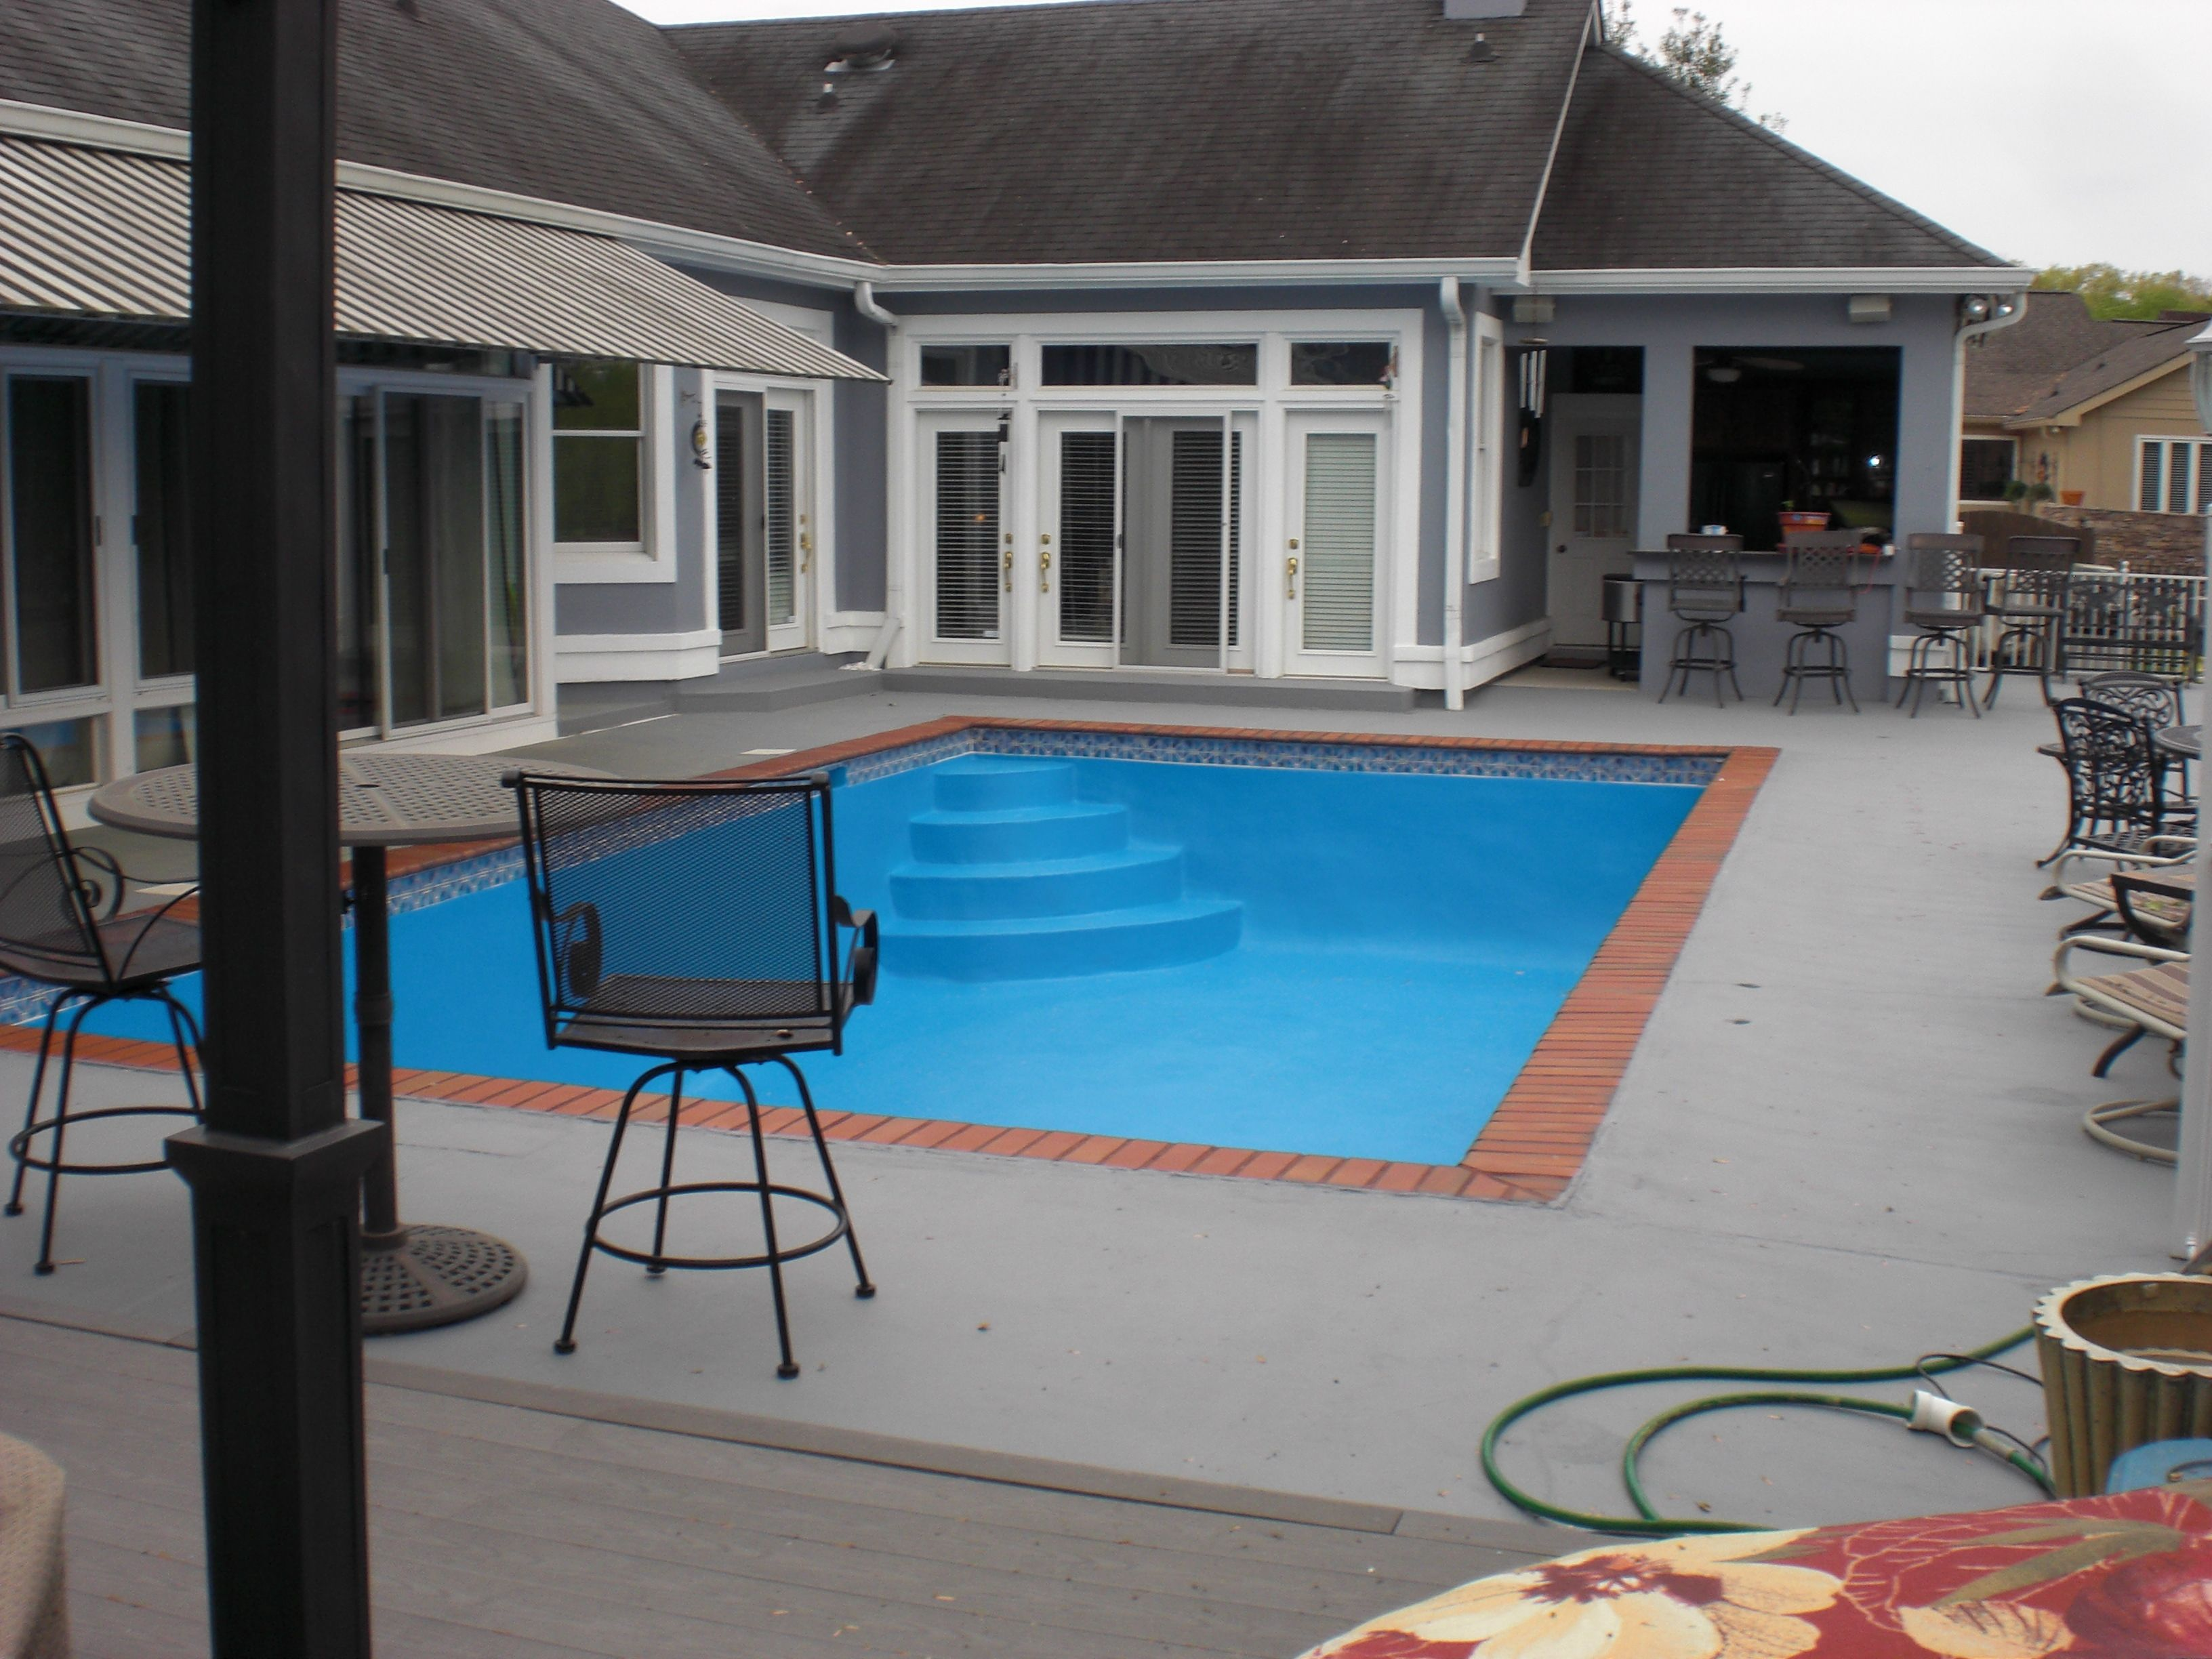 Pool Deck With Solid Concrete Stain In Storm Gray The Pool Was